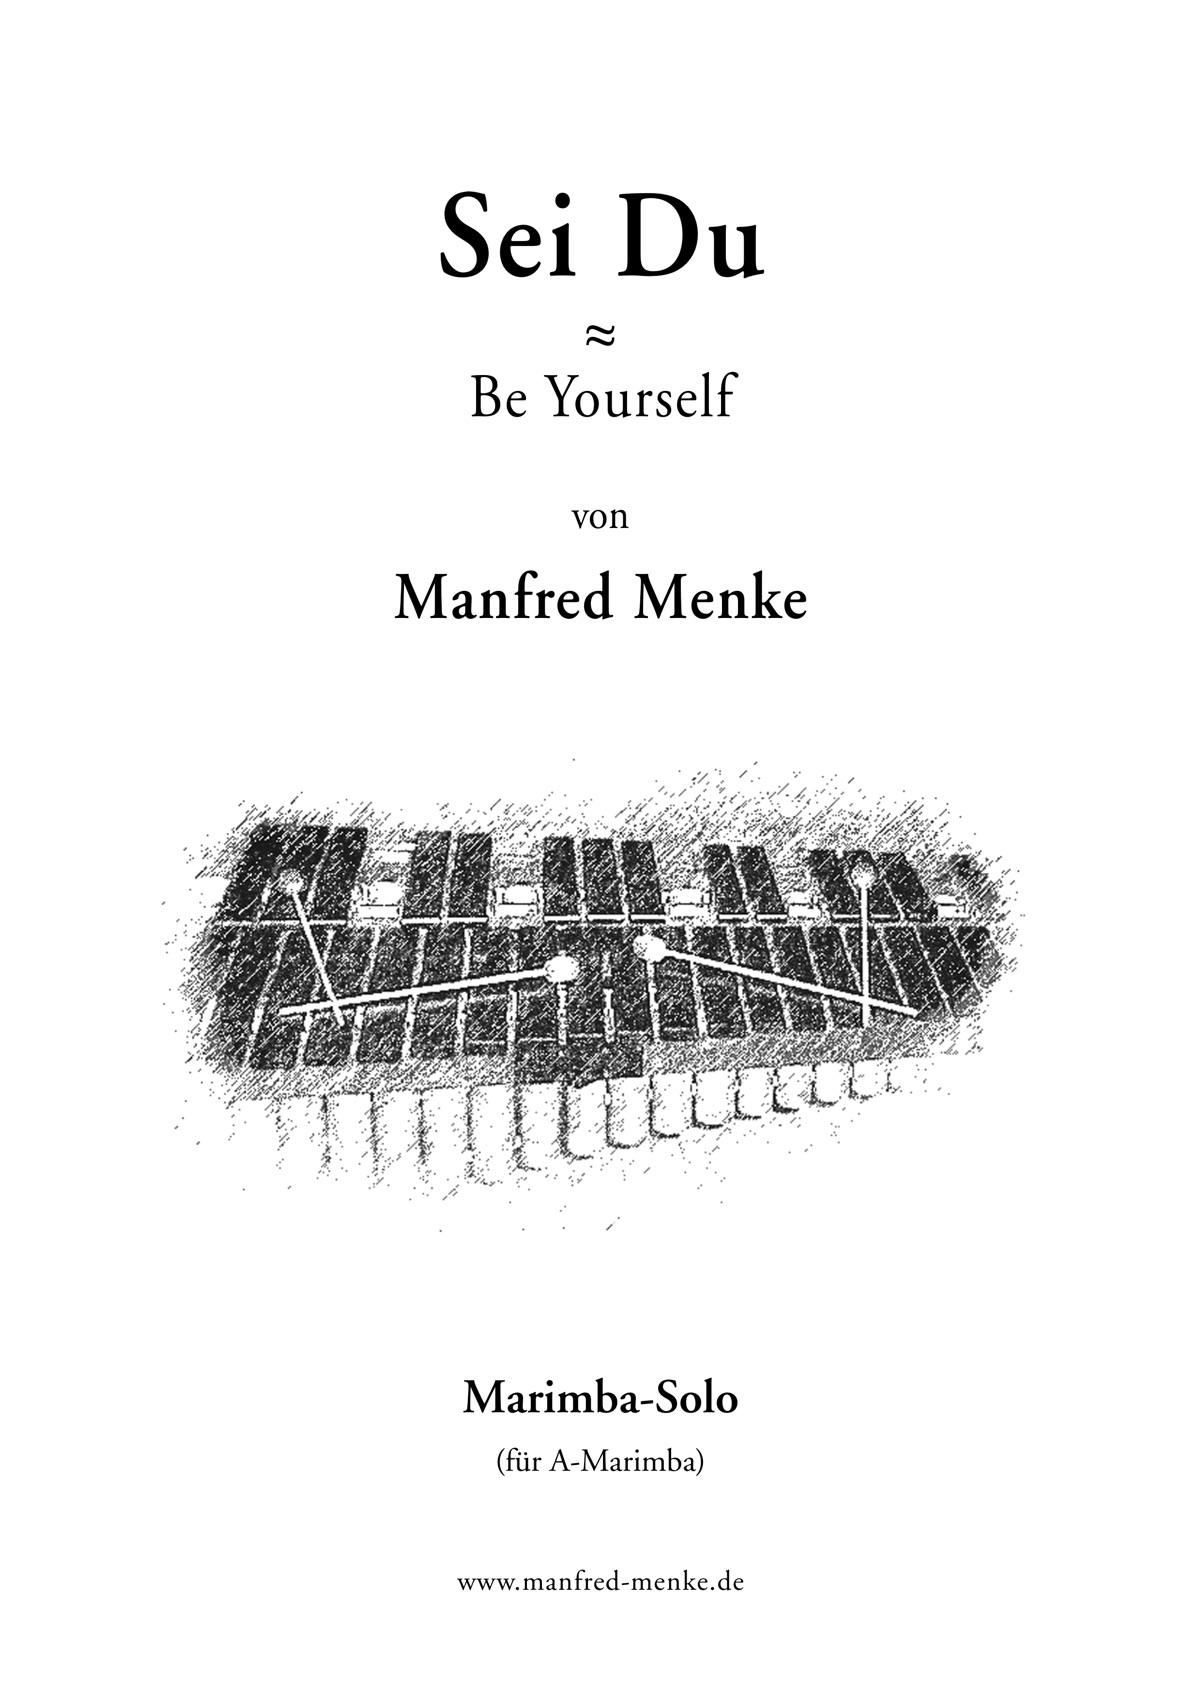 Marimba-Solo · Sei Du (Be Yourself)